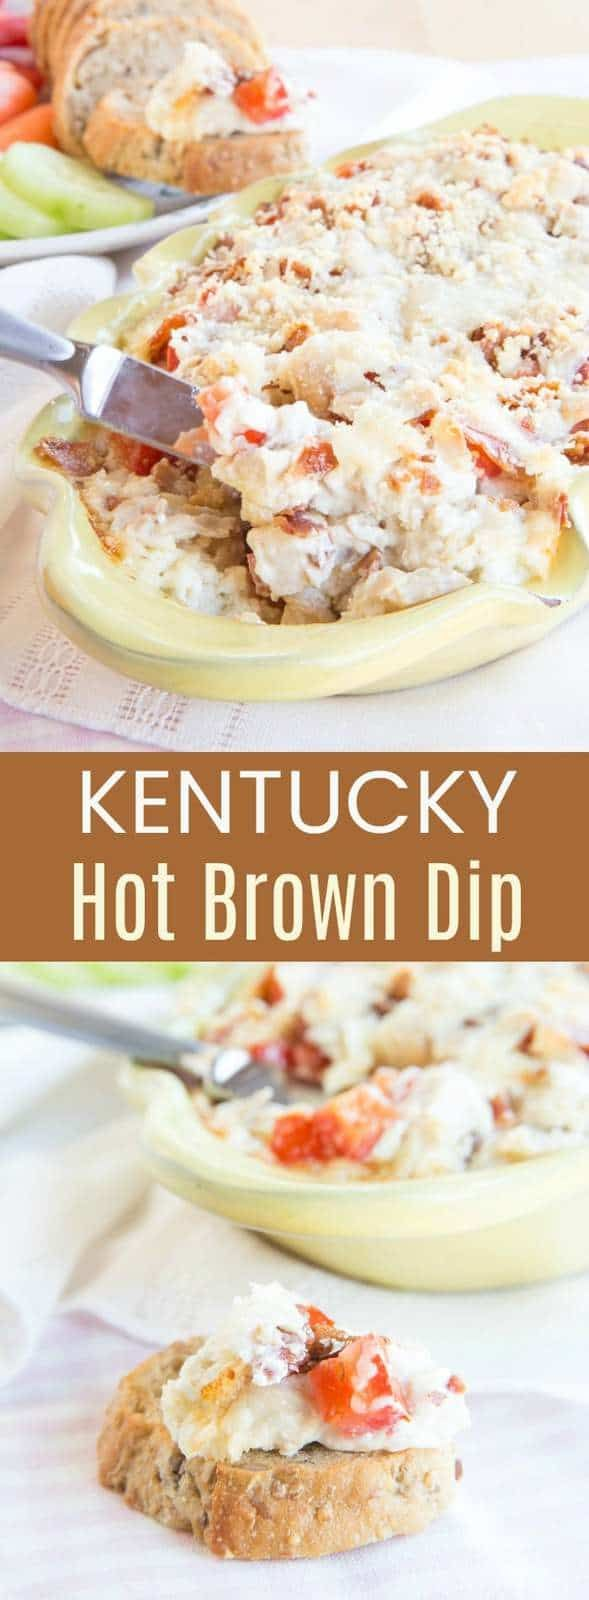 Kentucky Hot Brown Dip is a cheesy easy hot appetizer dip recipe with bacon, turkey, and cheese, just like a Kentucky Hot Brown sandwich.